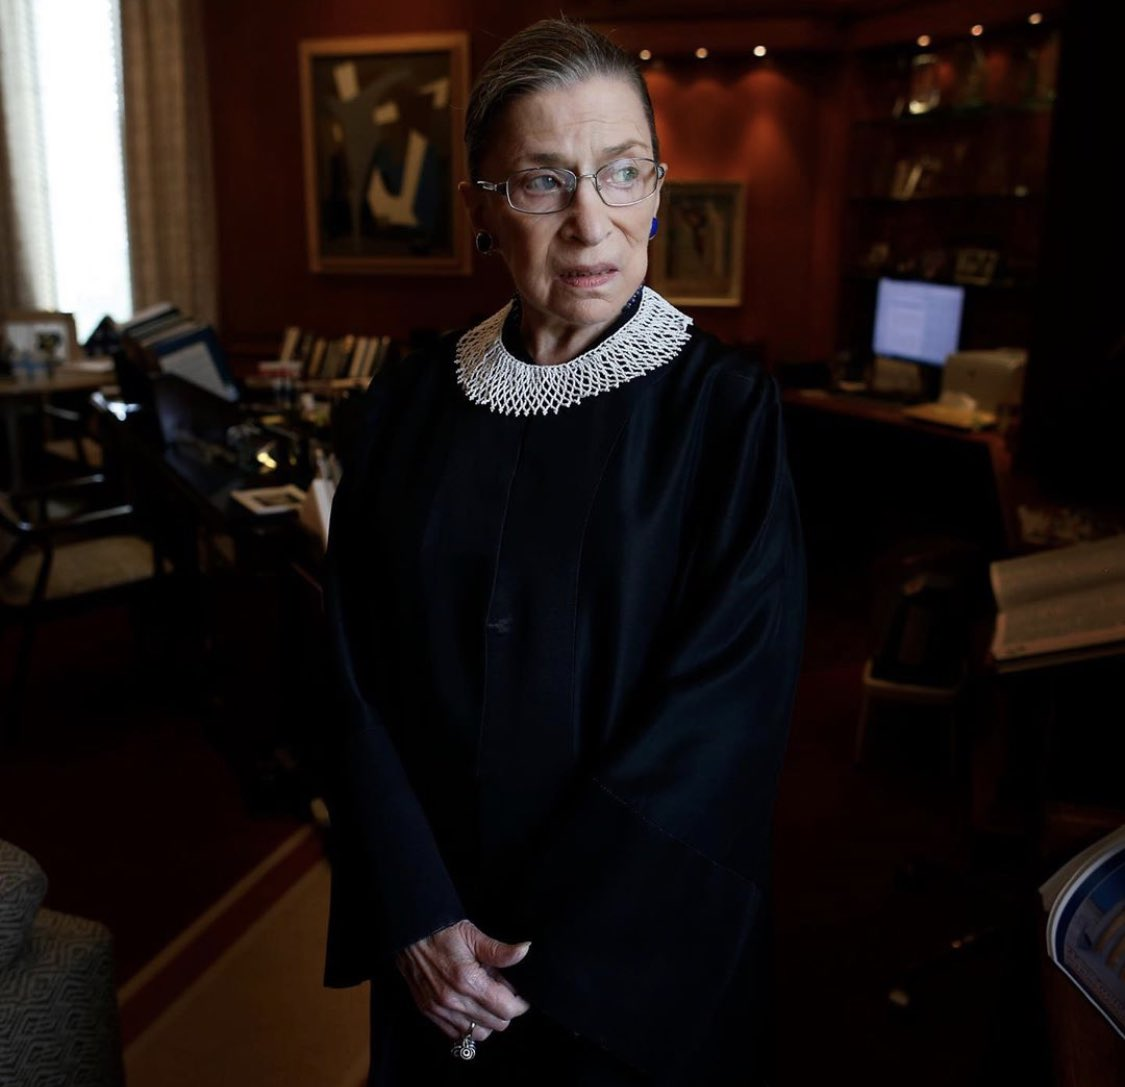 """""""The state controlling a woman would mean denying her full autonomy and full equality.""""   Ruth Bader Ginsburg 1933-2020 💫   @world_midwives  @MidwivesRCM  @bpas1968 https://t.co/hrFpsggYbj"""